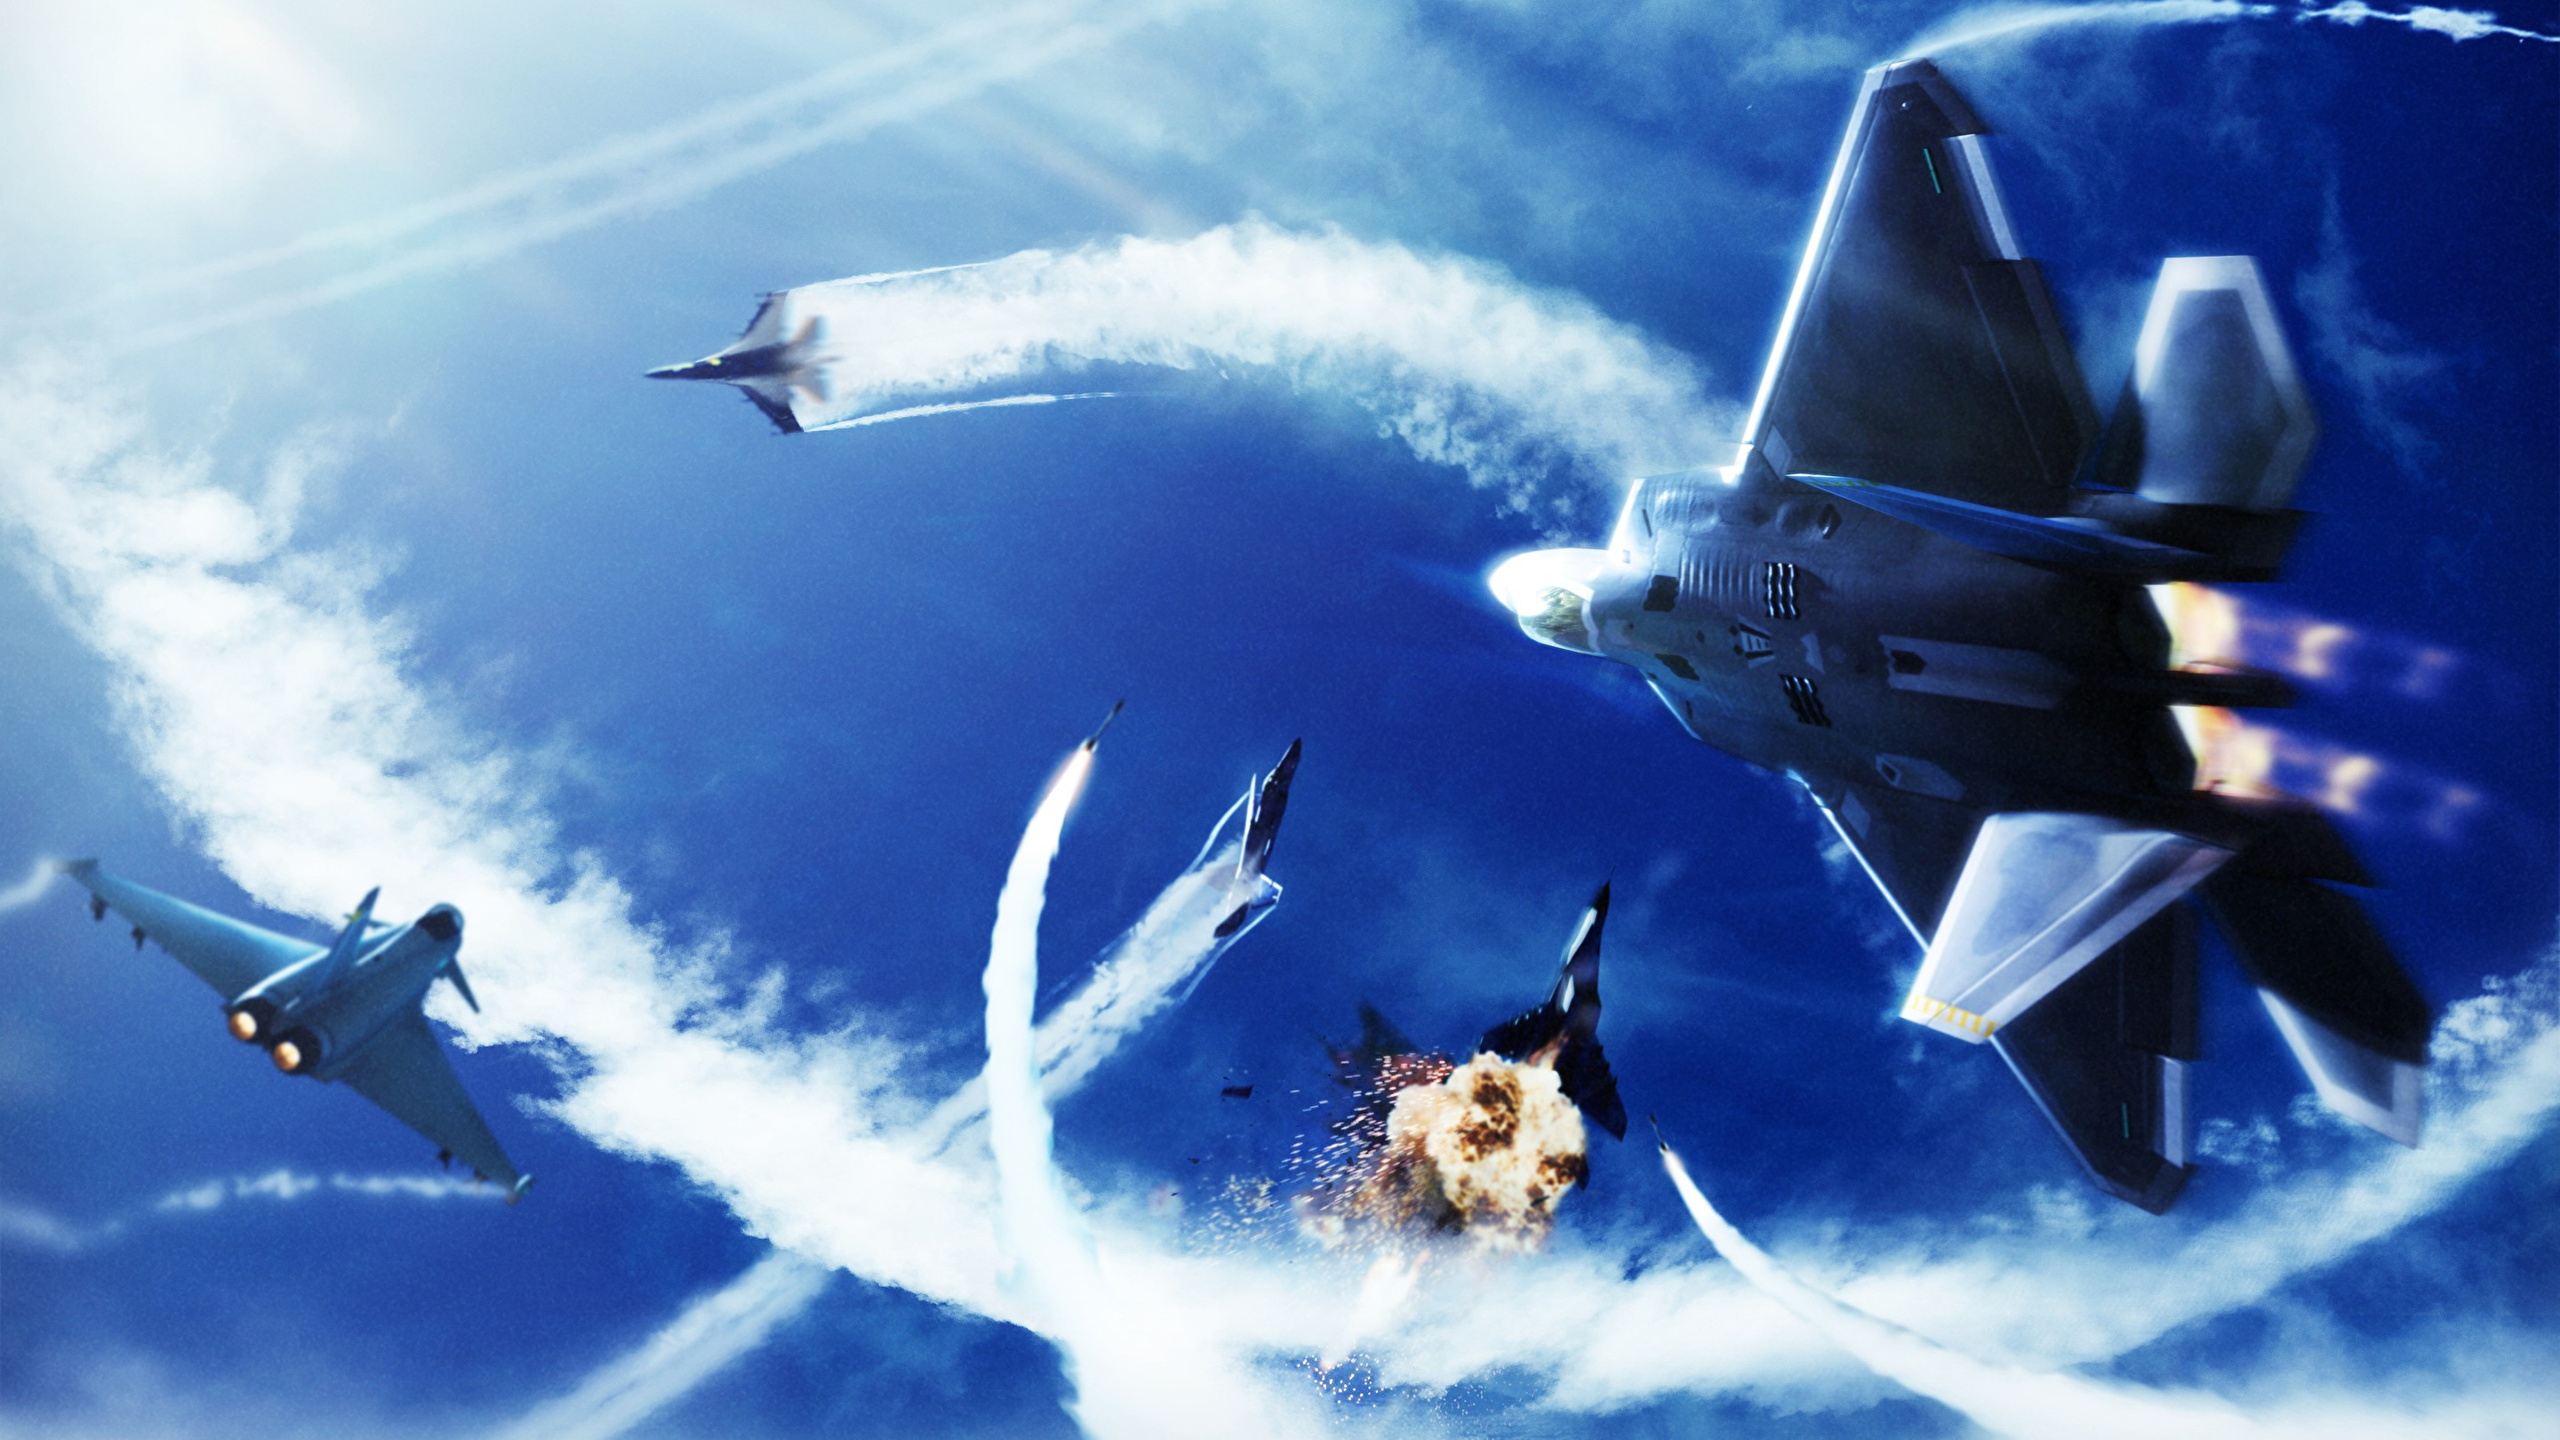 Desktop Wallpapers Ace Combat Fighter Airplane Airplane